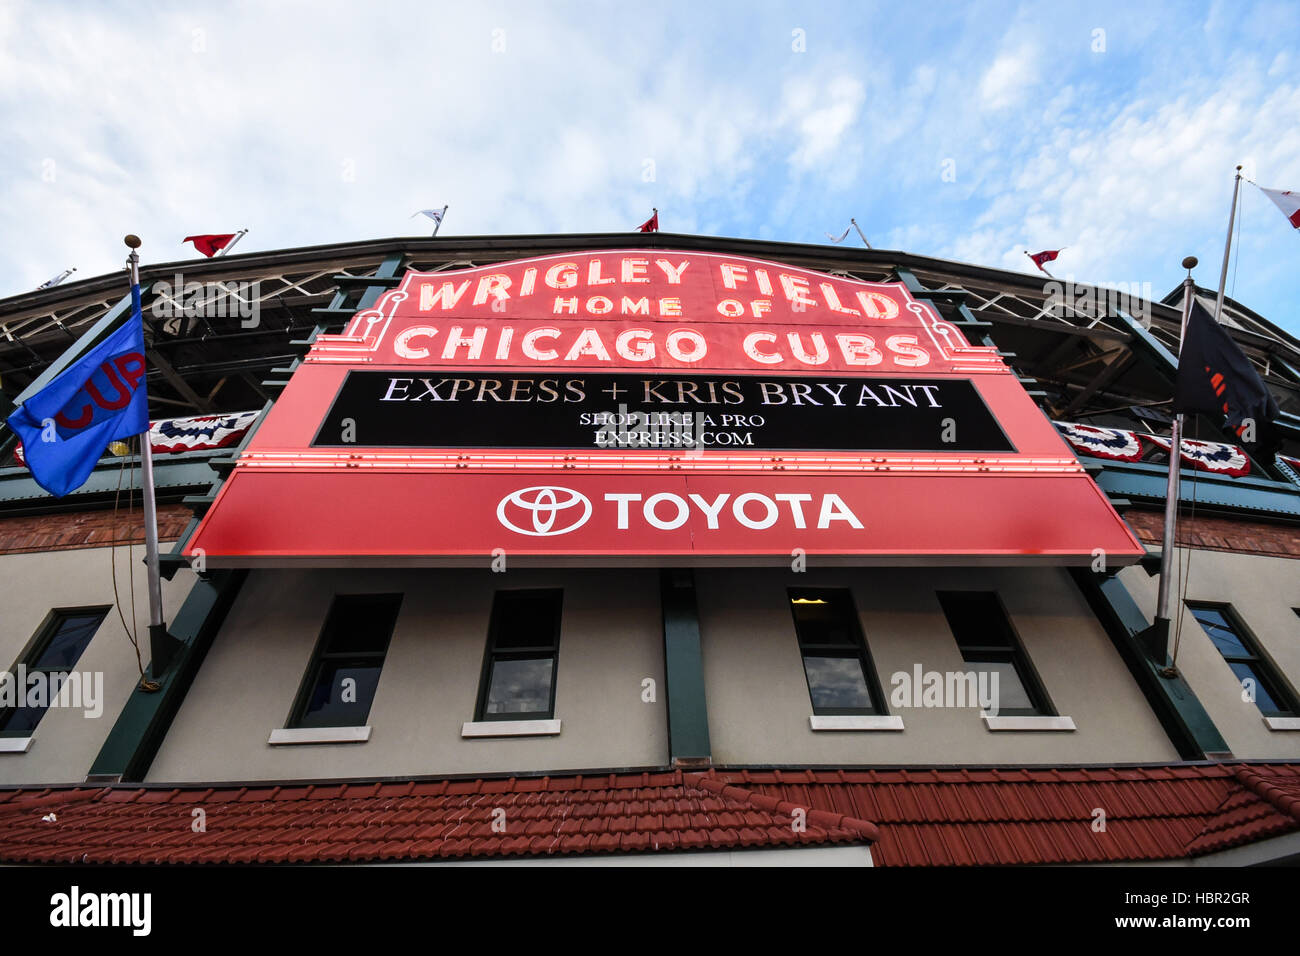 The legendary marquee of Wrigley Field. Wrigley Field is a baseball park located on the North Side of Chicago, Illinois. - Stock Image